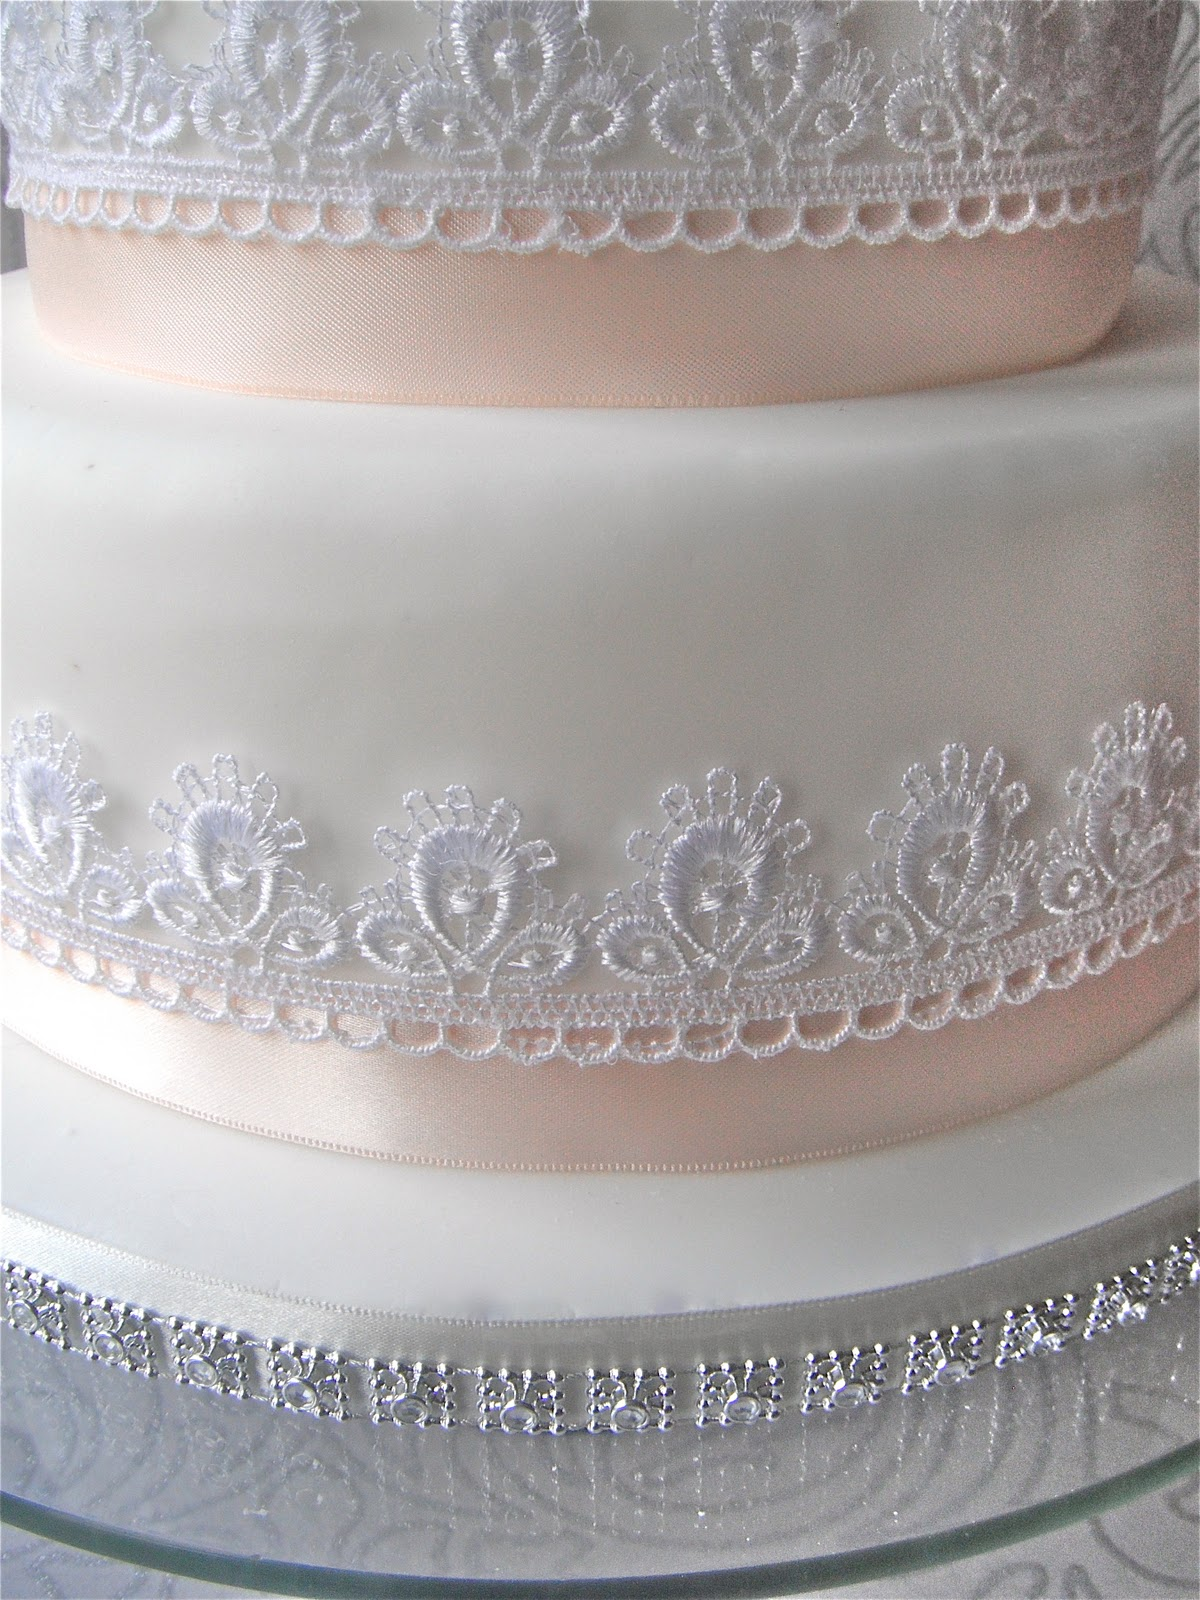 Cake Decorating Sugar Lace : Sugar Ruffles, Elegant Wedding Cakes. Barrow in Furness and the Lake District, Cumbria: Peony ...